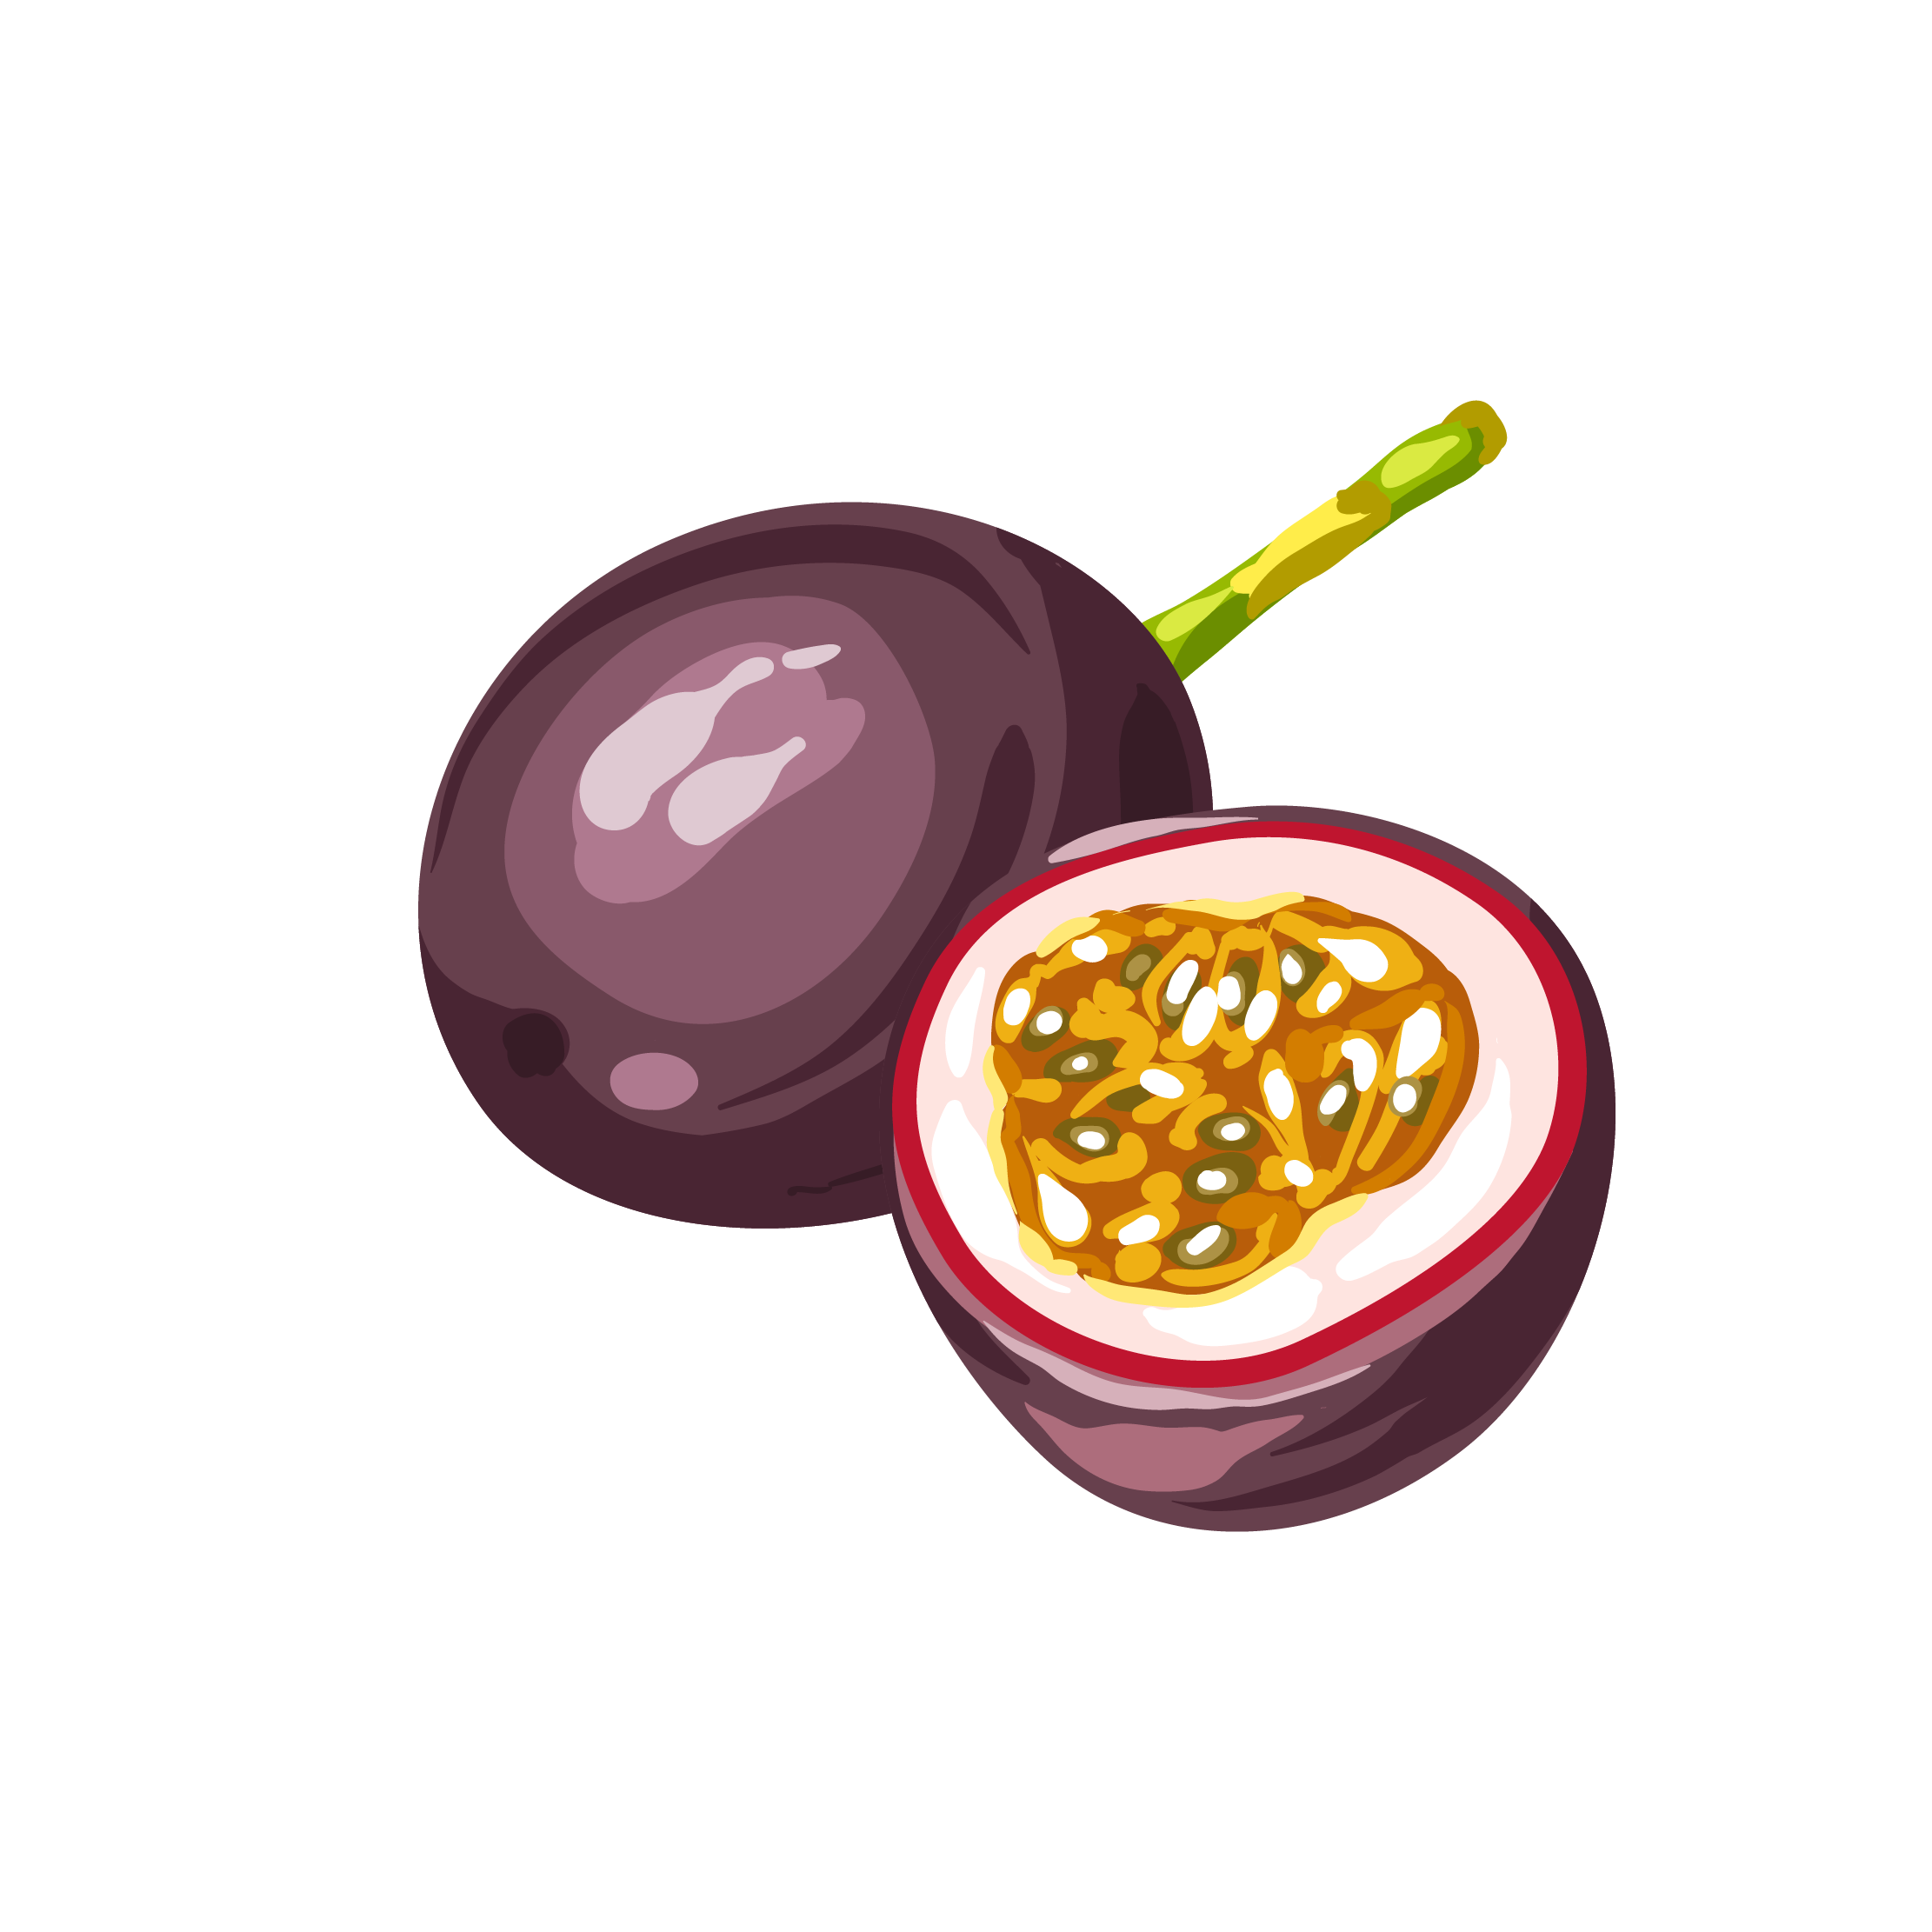 Royalty free stock photography. Clipart fruit passion fruit